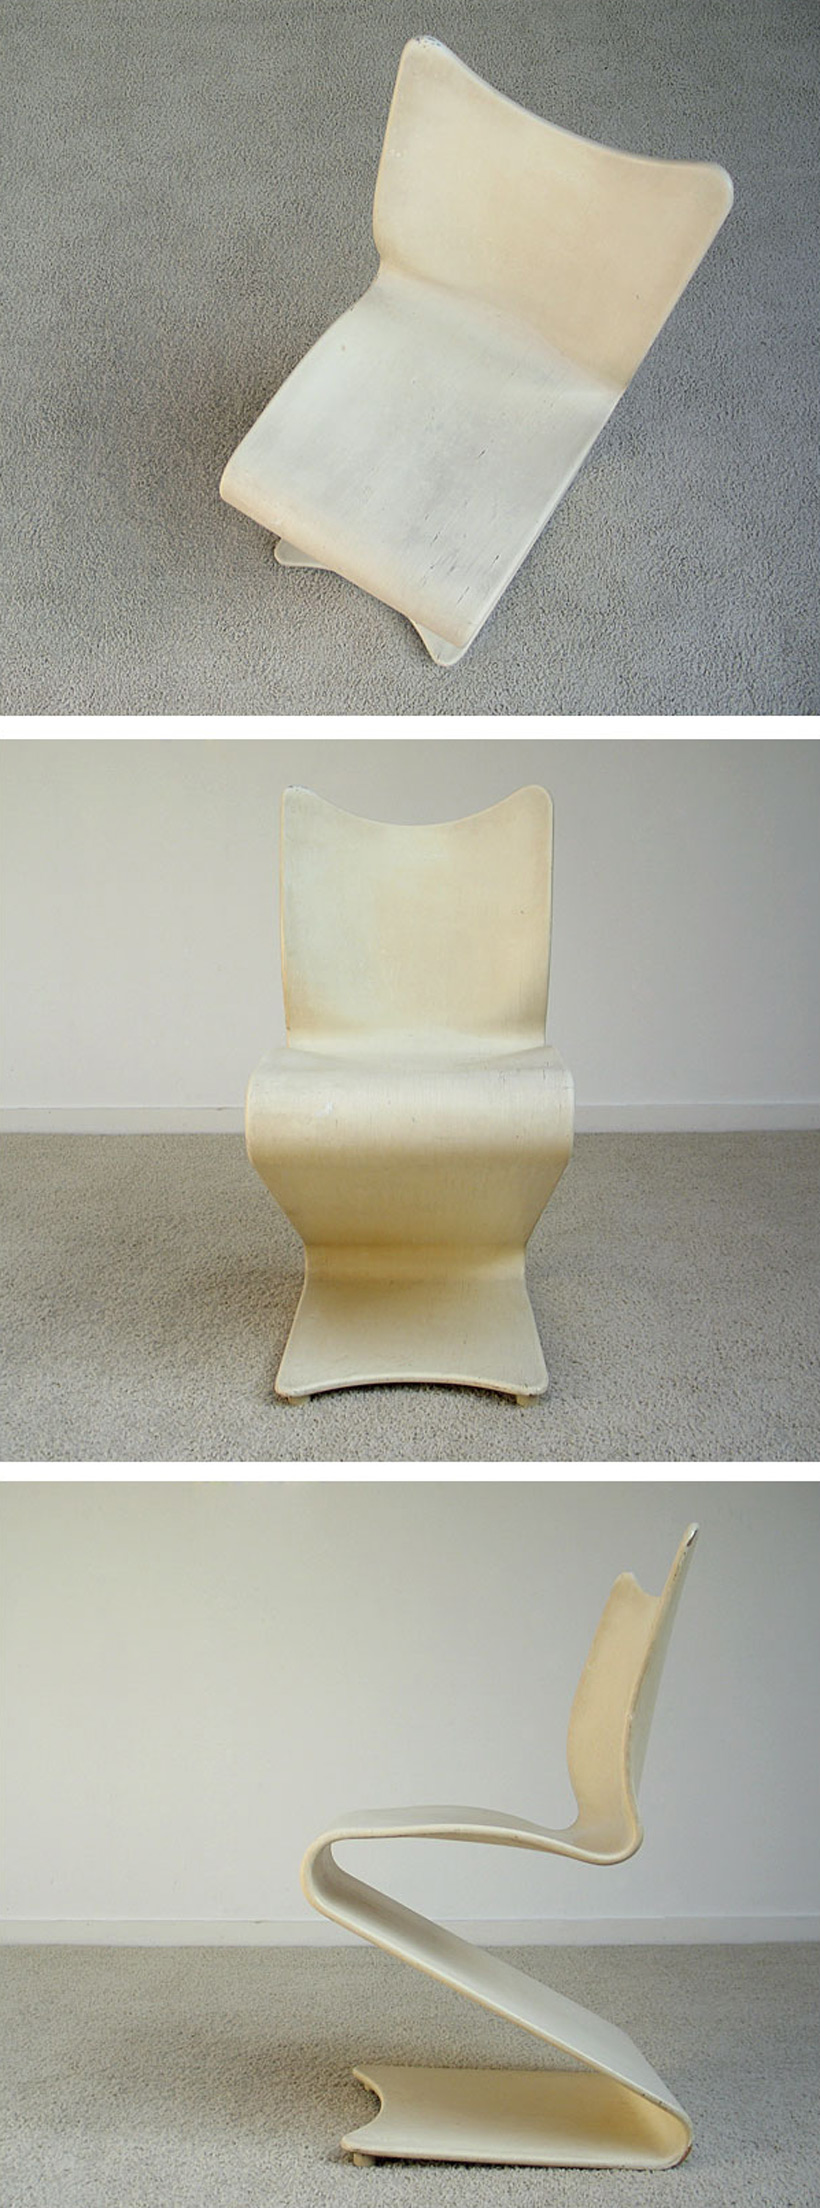 Verner Panton S-chair model 275 Thonet Large